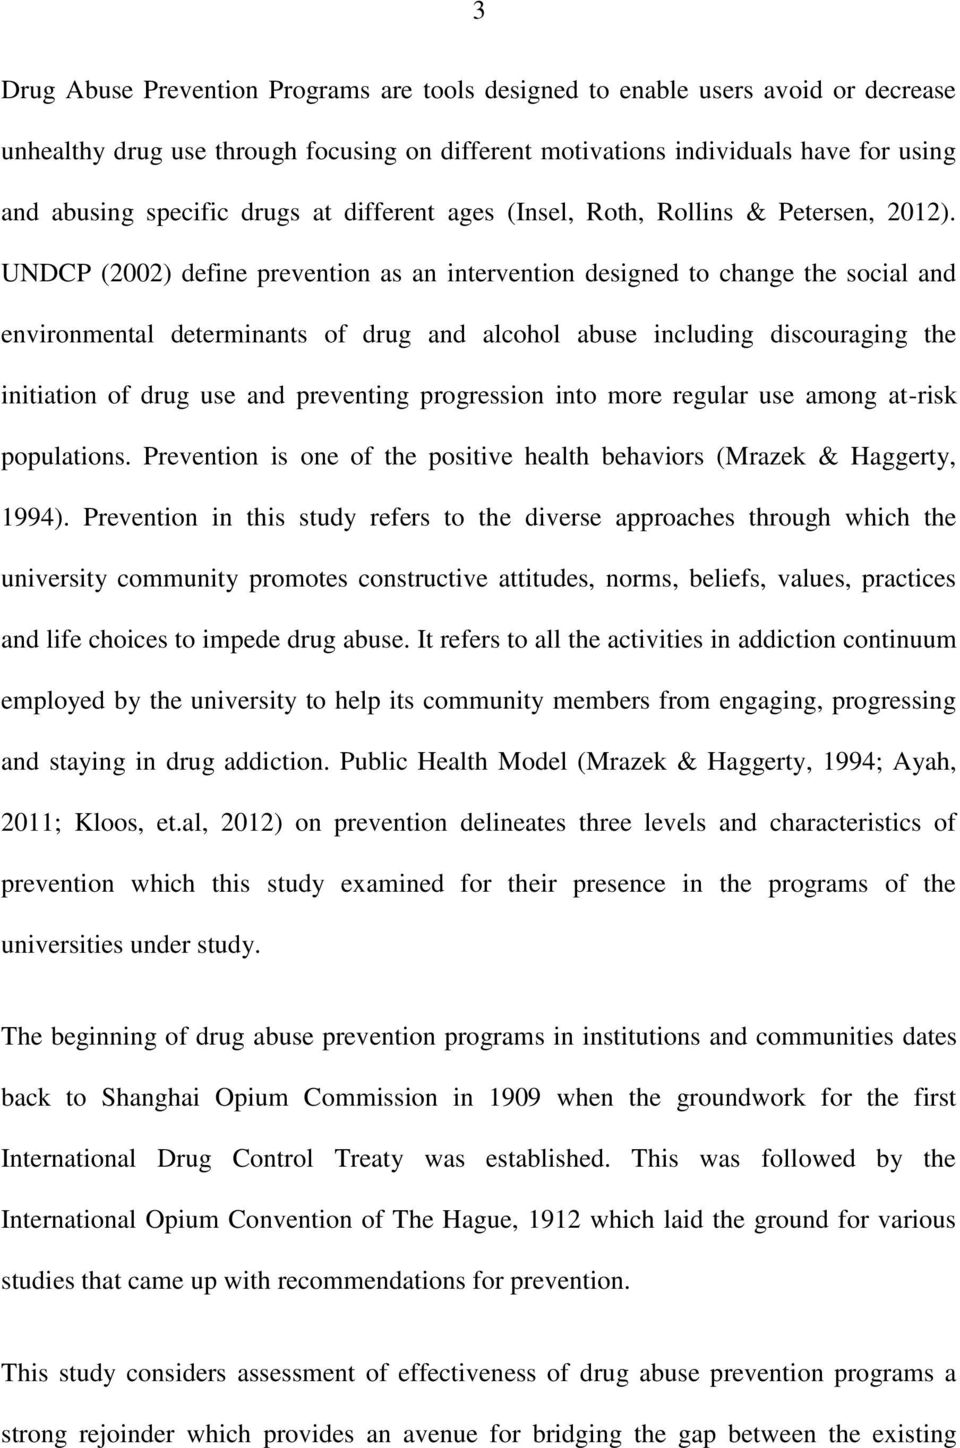 UNDCP (2002) define prevention as an intervention designed to change the social and environmental determinants of drug and alcohol abuse including discouraging the initiation of drug use and